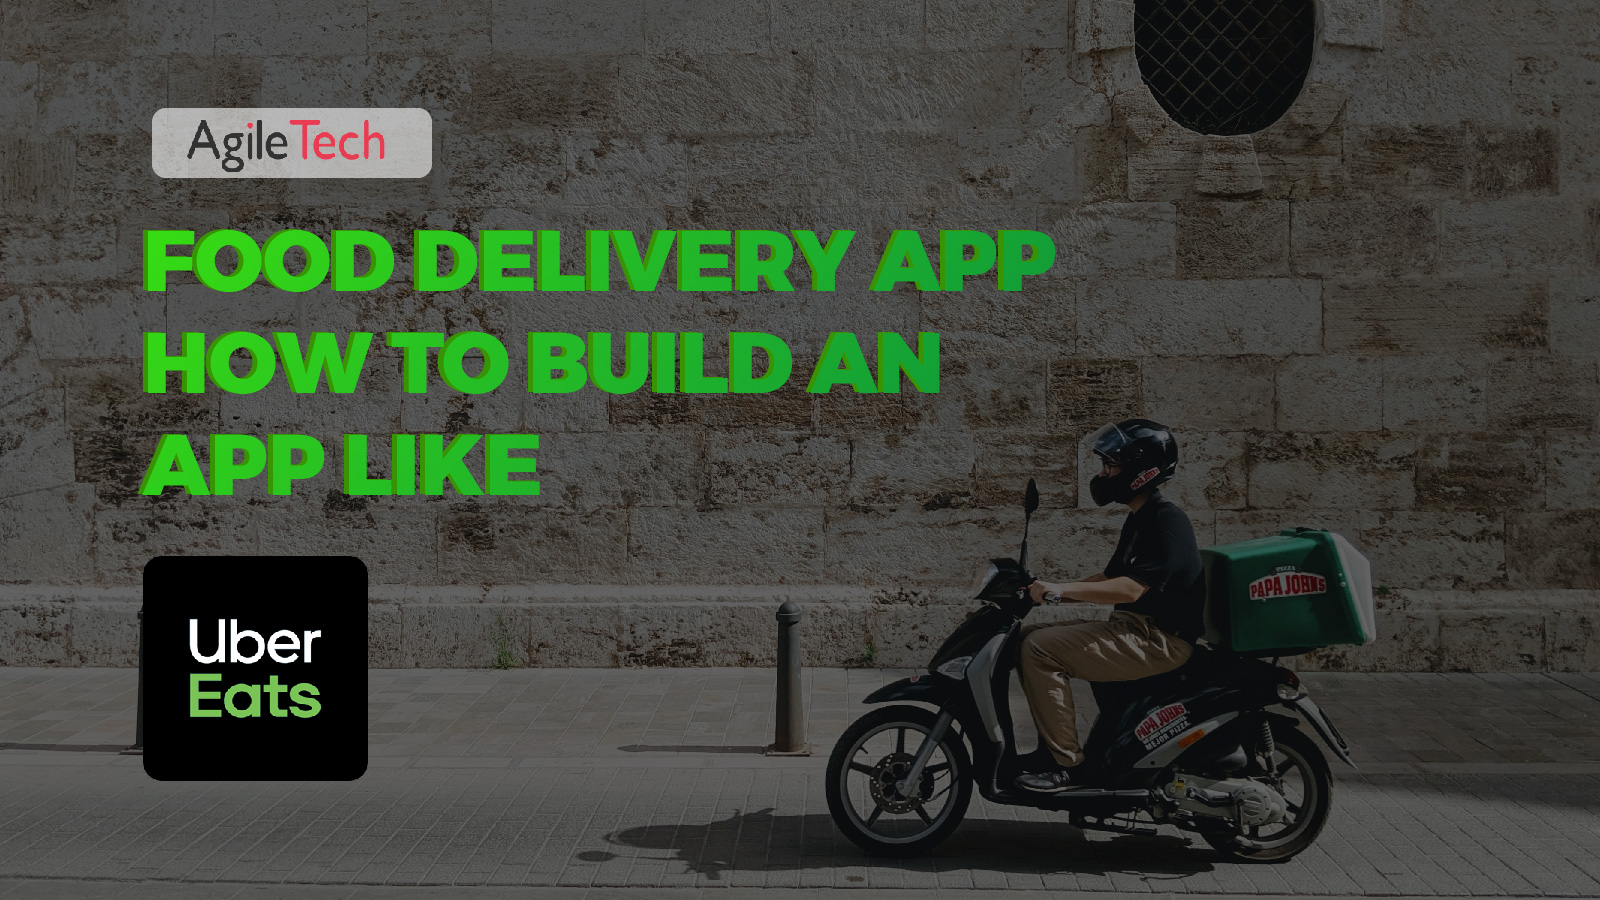 food delivery app how to buiild app like uber eats food delivery and takeout agiletech